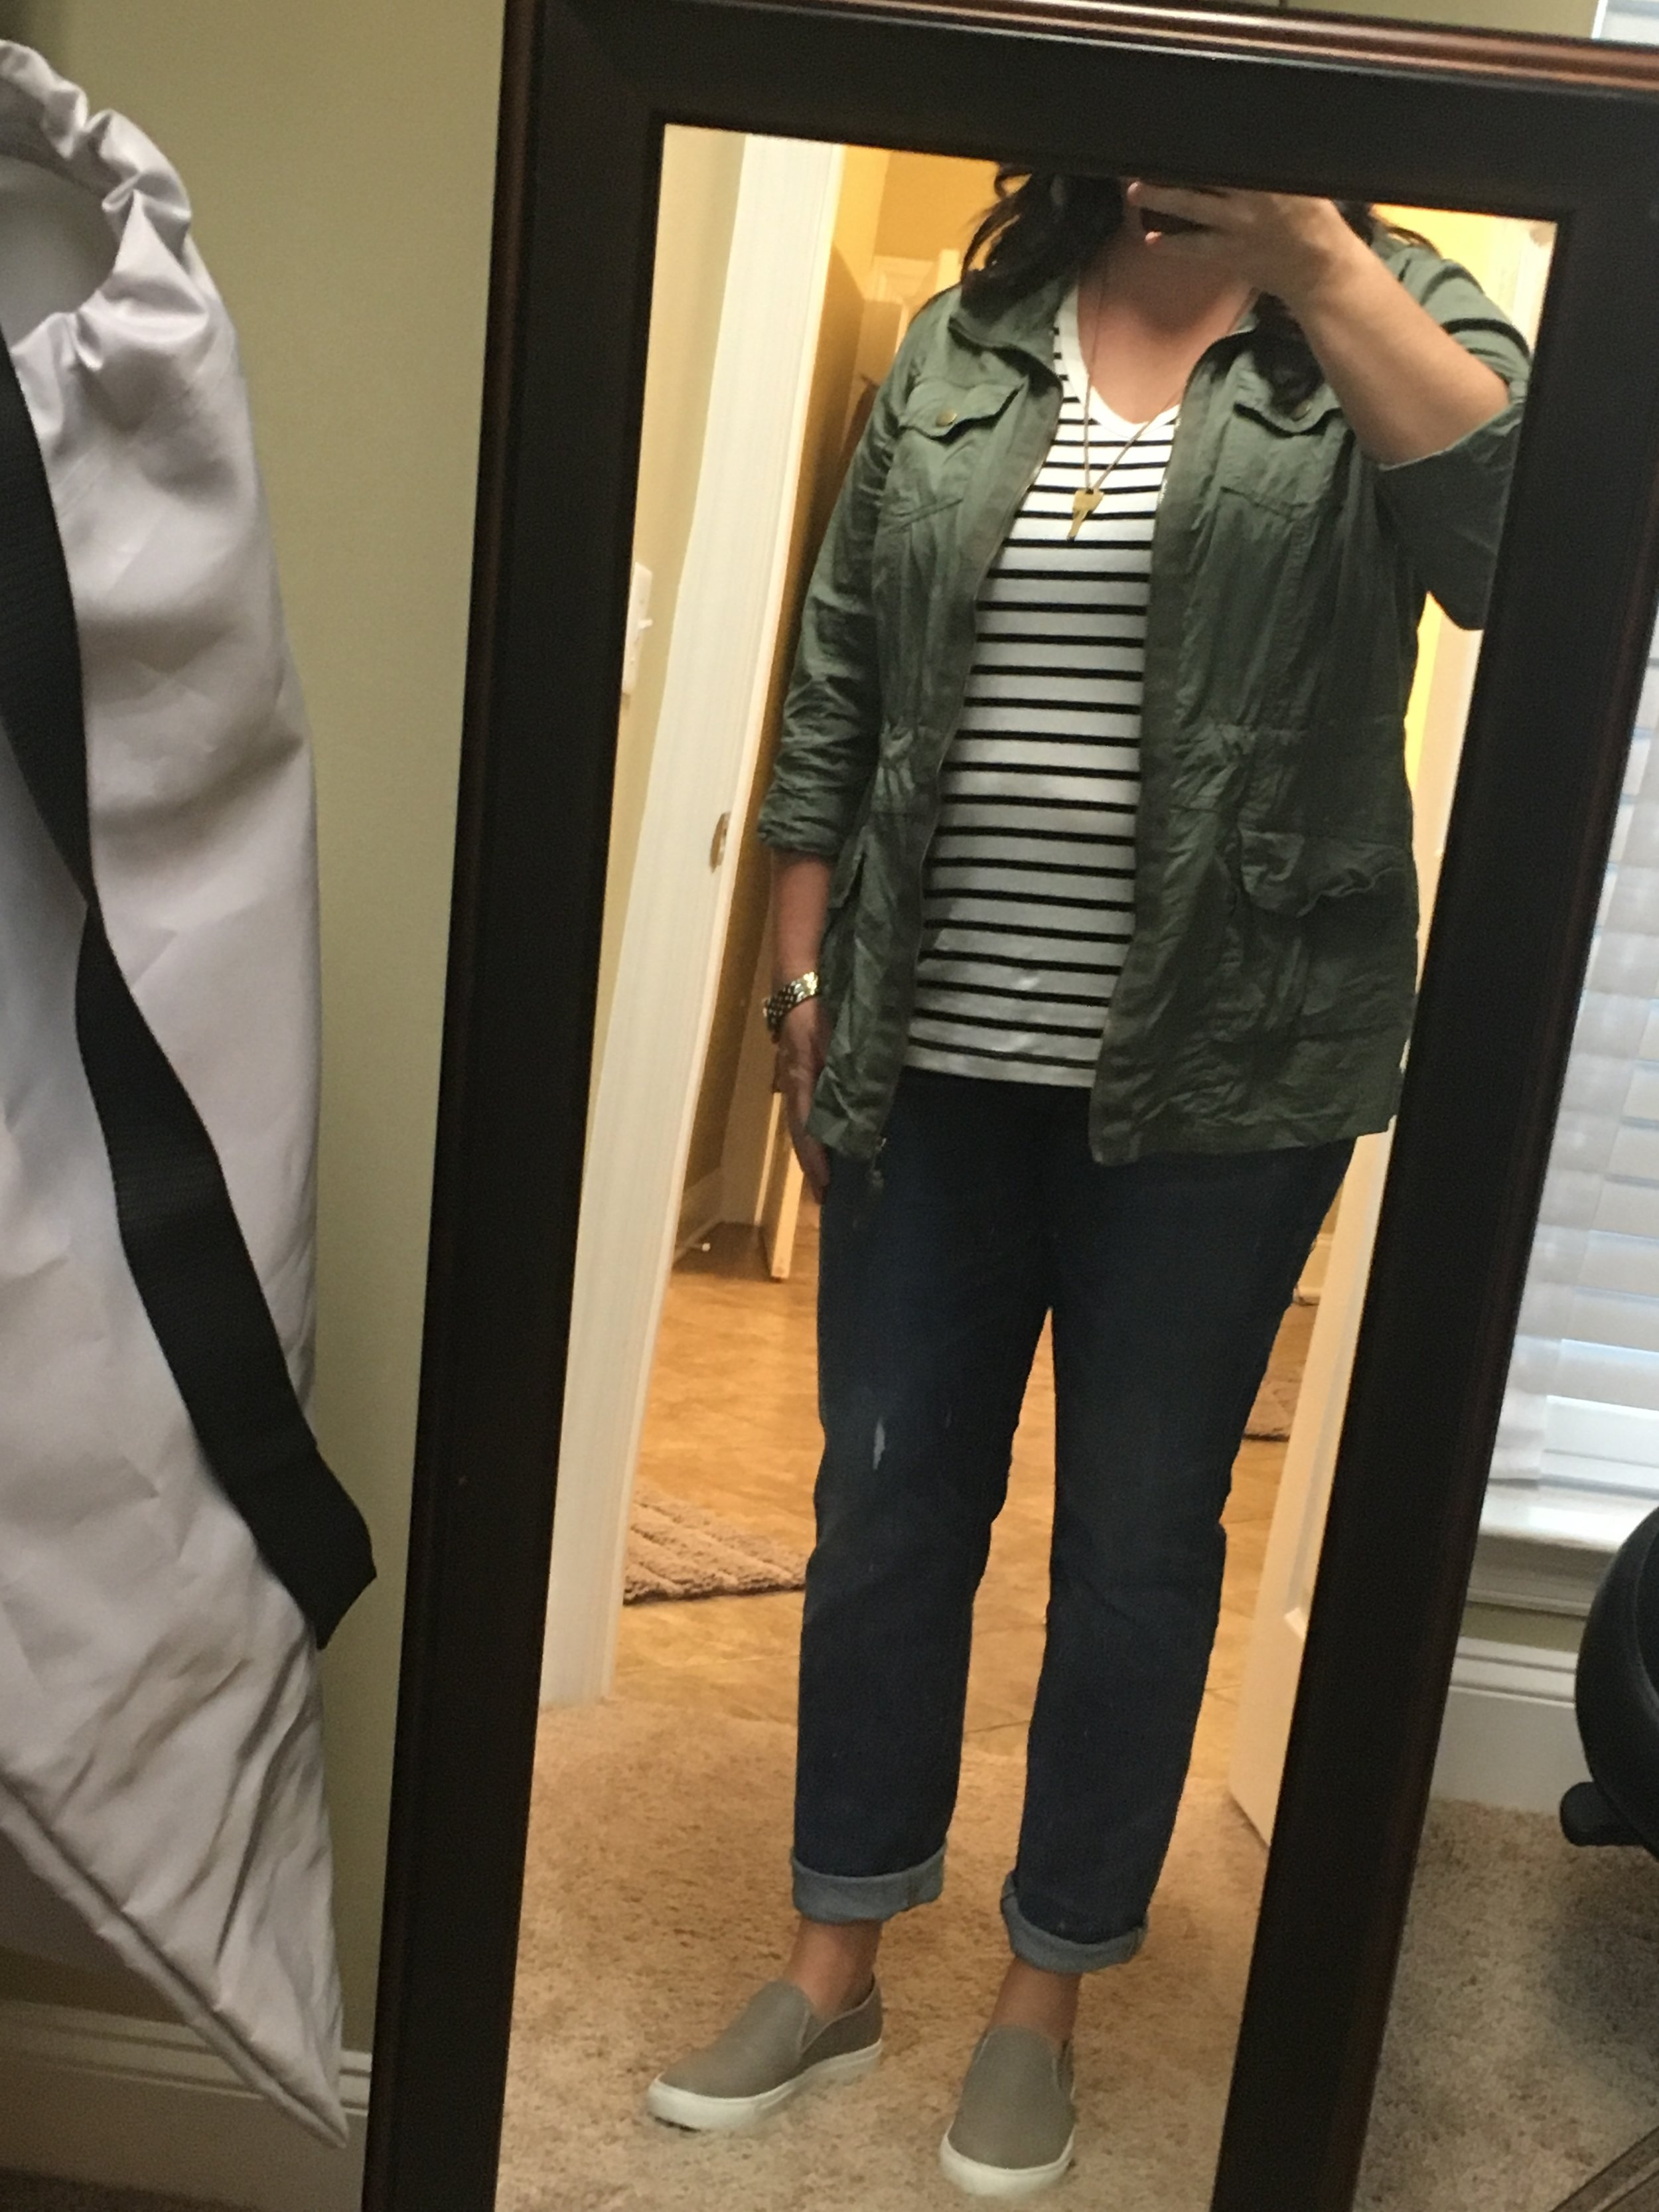 I'm terrible at these mirror shots, but I liked this outfit.  Striped tee (Target), utility jacket (Ross), jeans (Madewell), sneakers (Steve Madden), Giving Key necklace